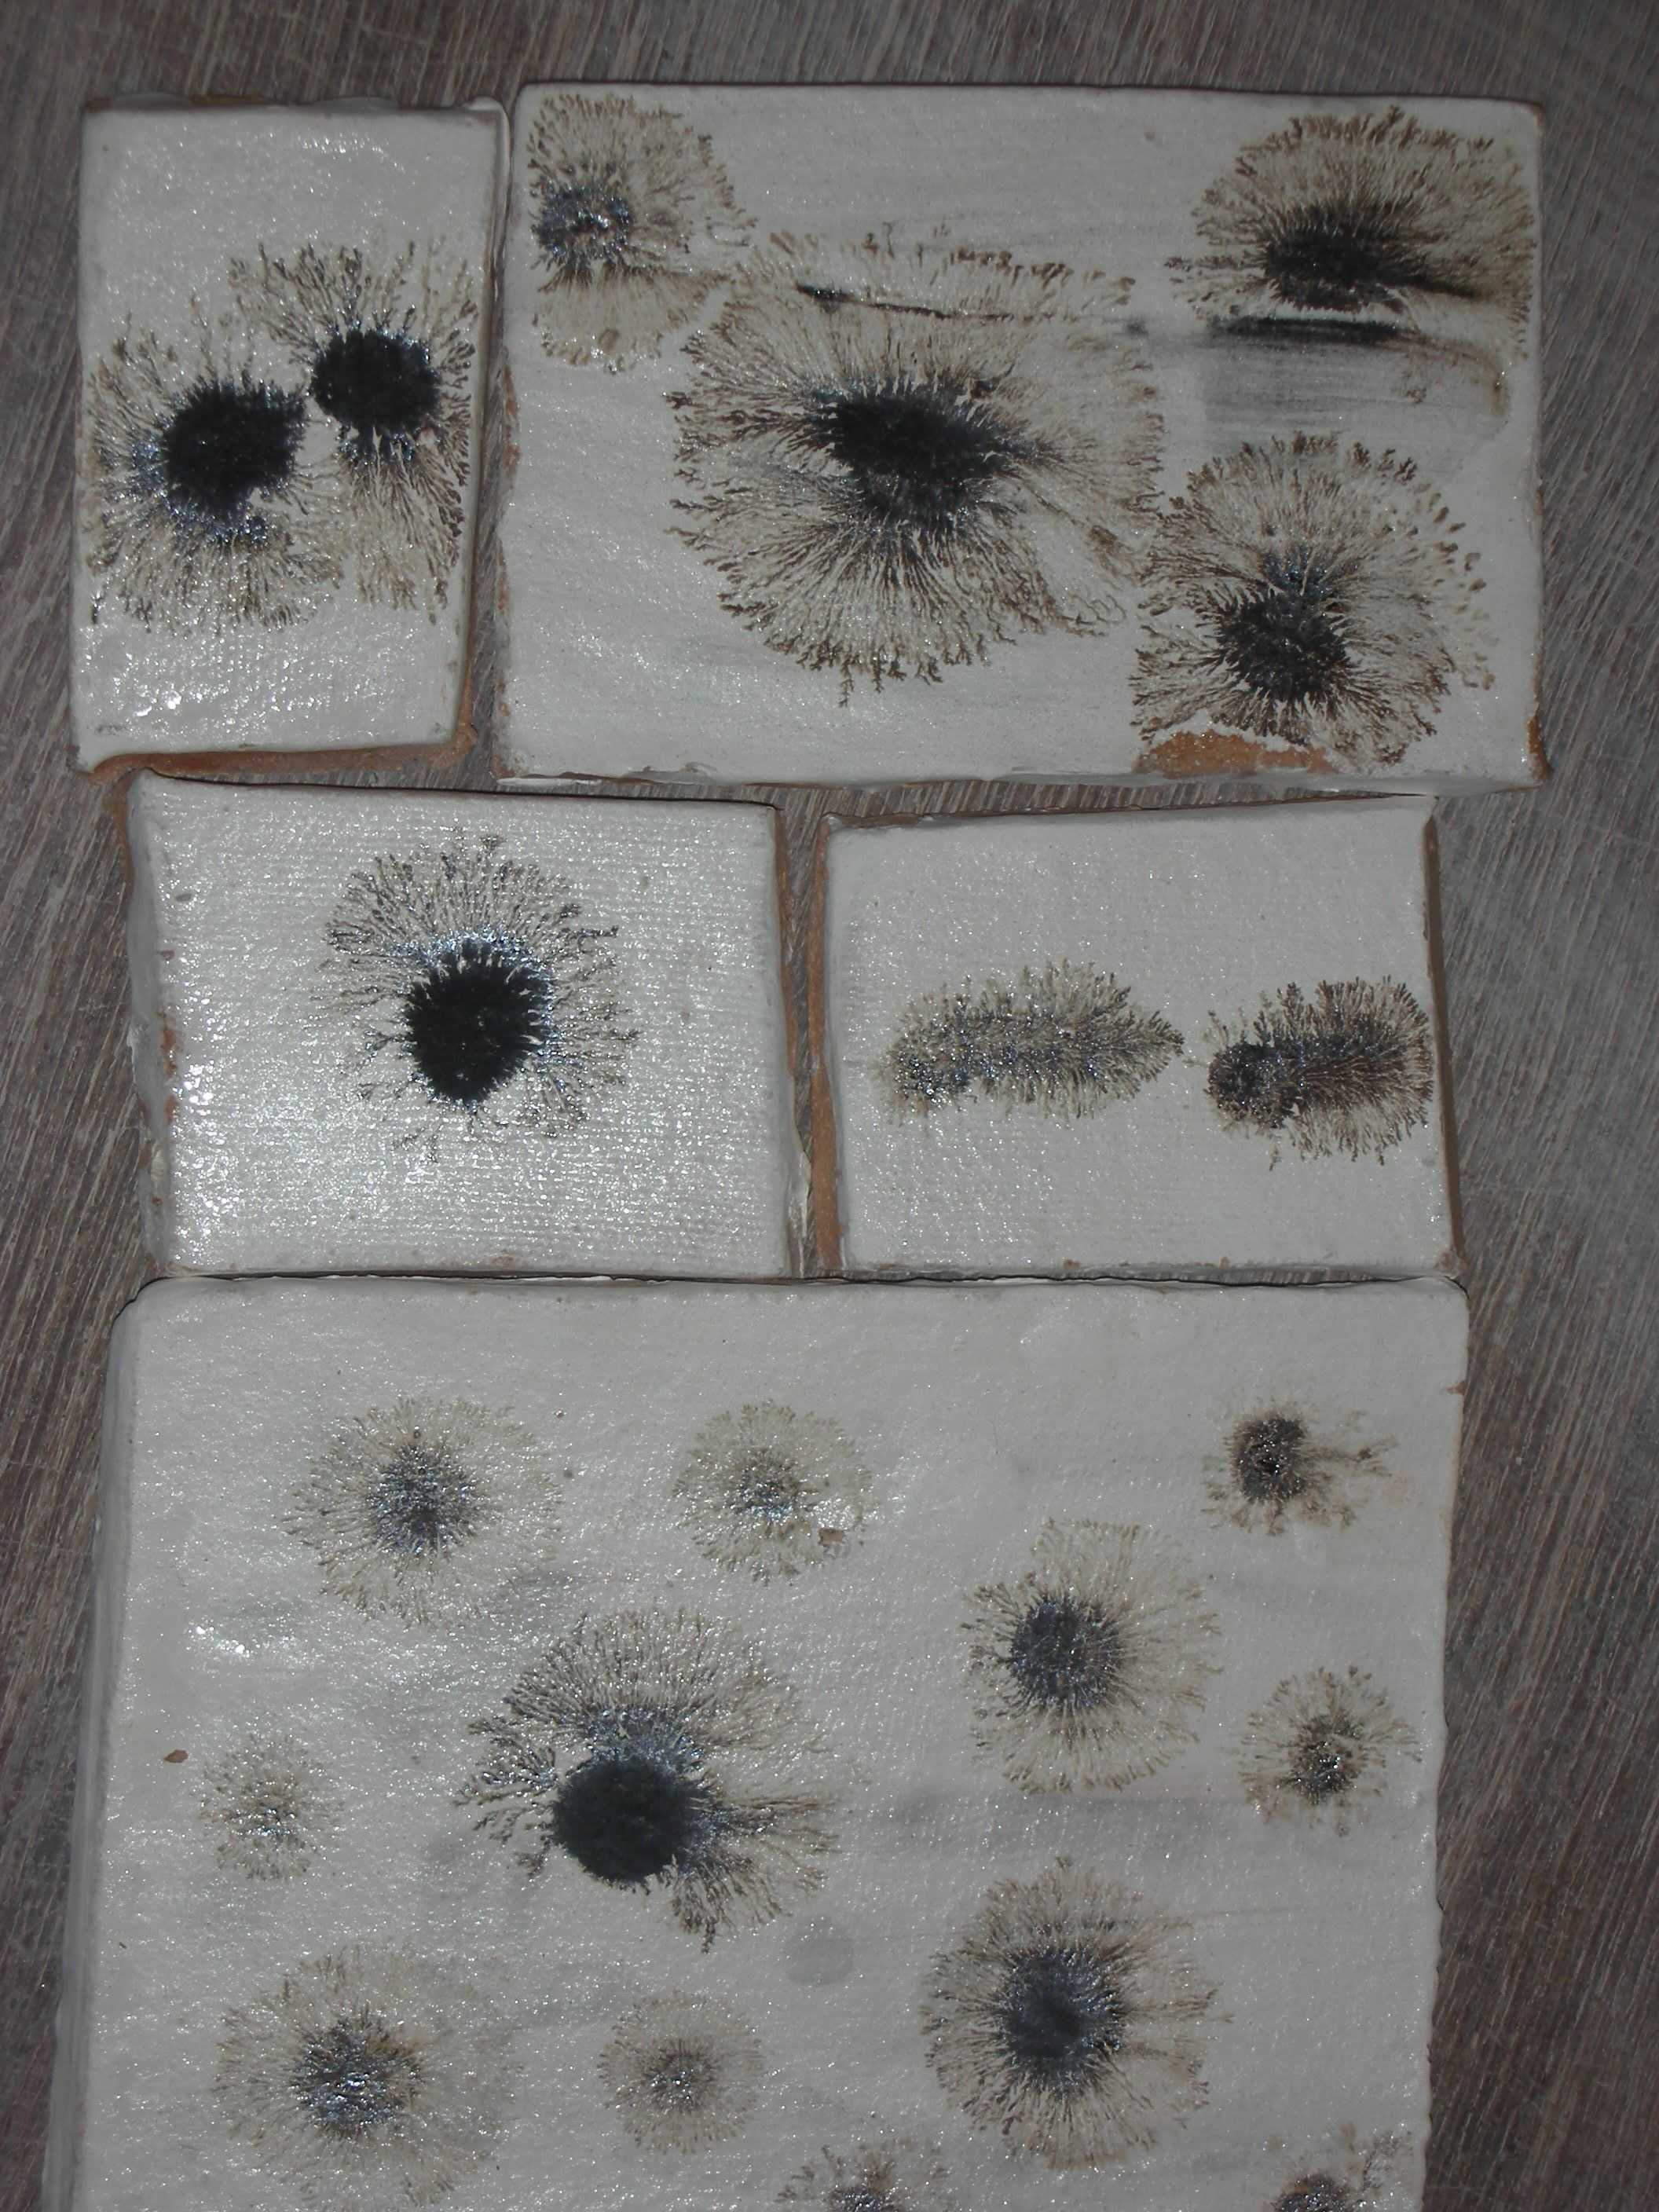 Glazed ceramic tiles using manganese oxide and vinegar placed on glazed ceramic tiles using manganese oxide and vinegar placed on wet slip created this fern dailygadgetfo Gallery